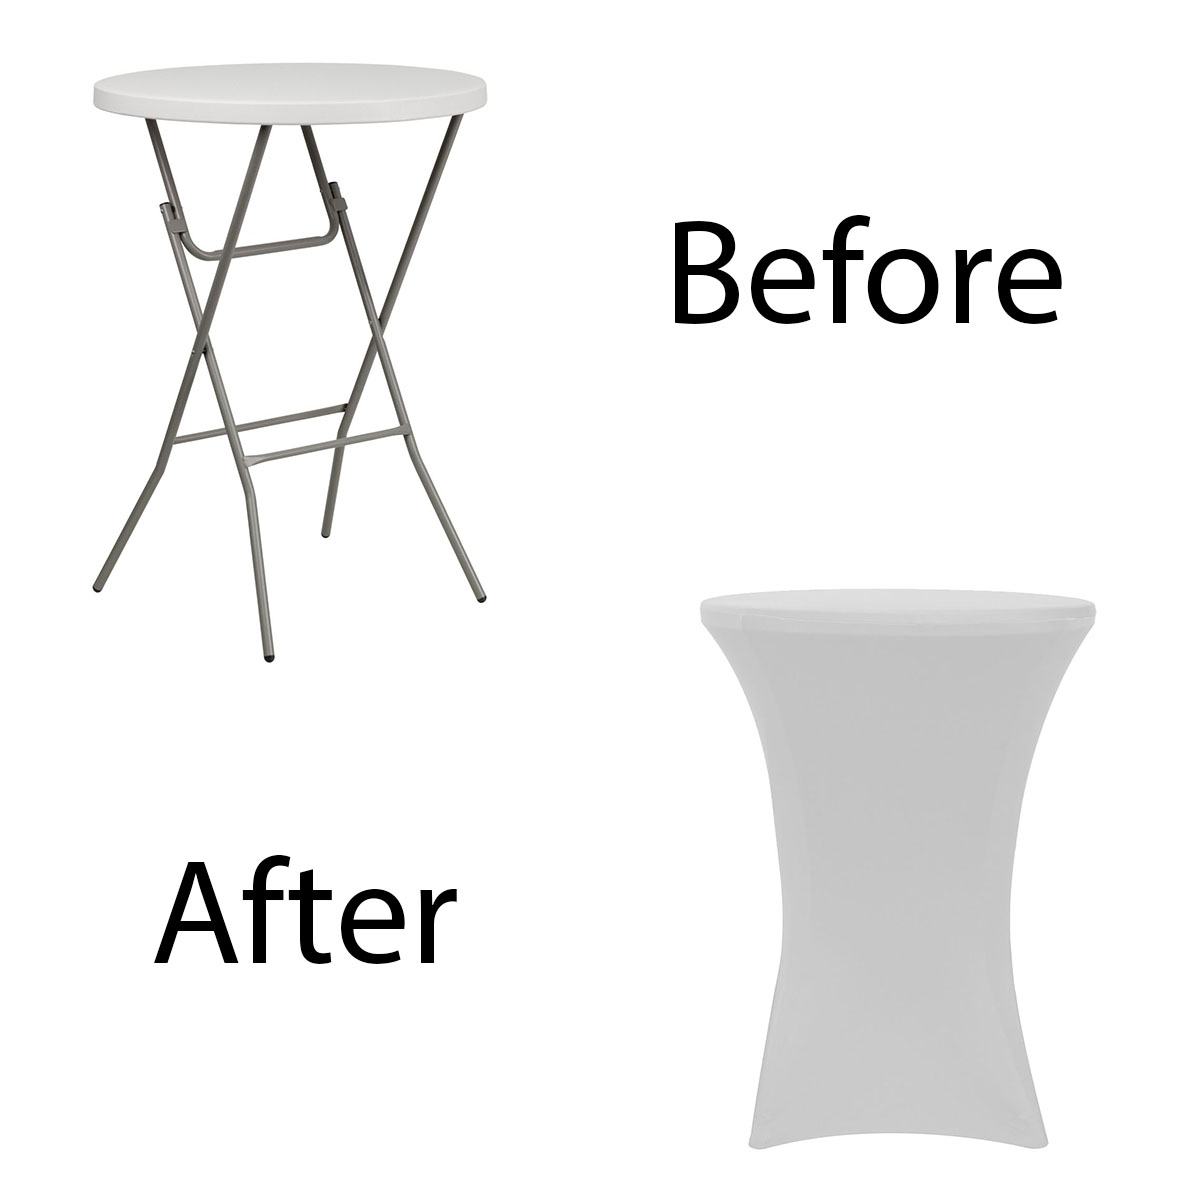 32-inch-highboy-cocktail-spandex-table-covers-white-before-after.jpg